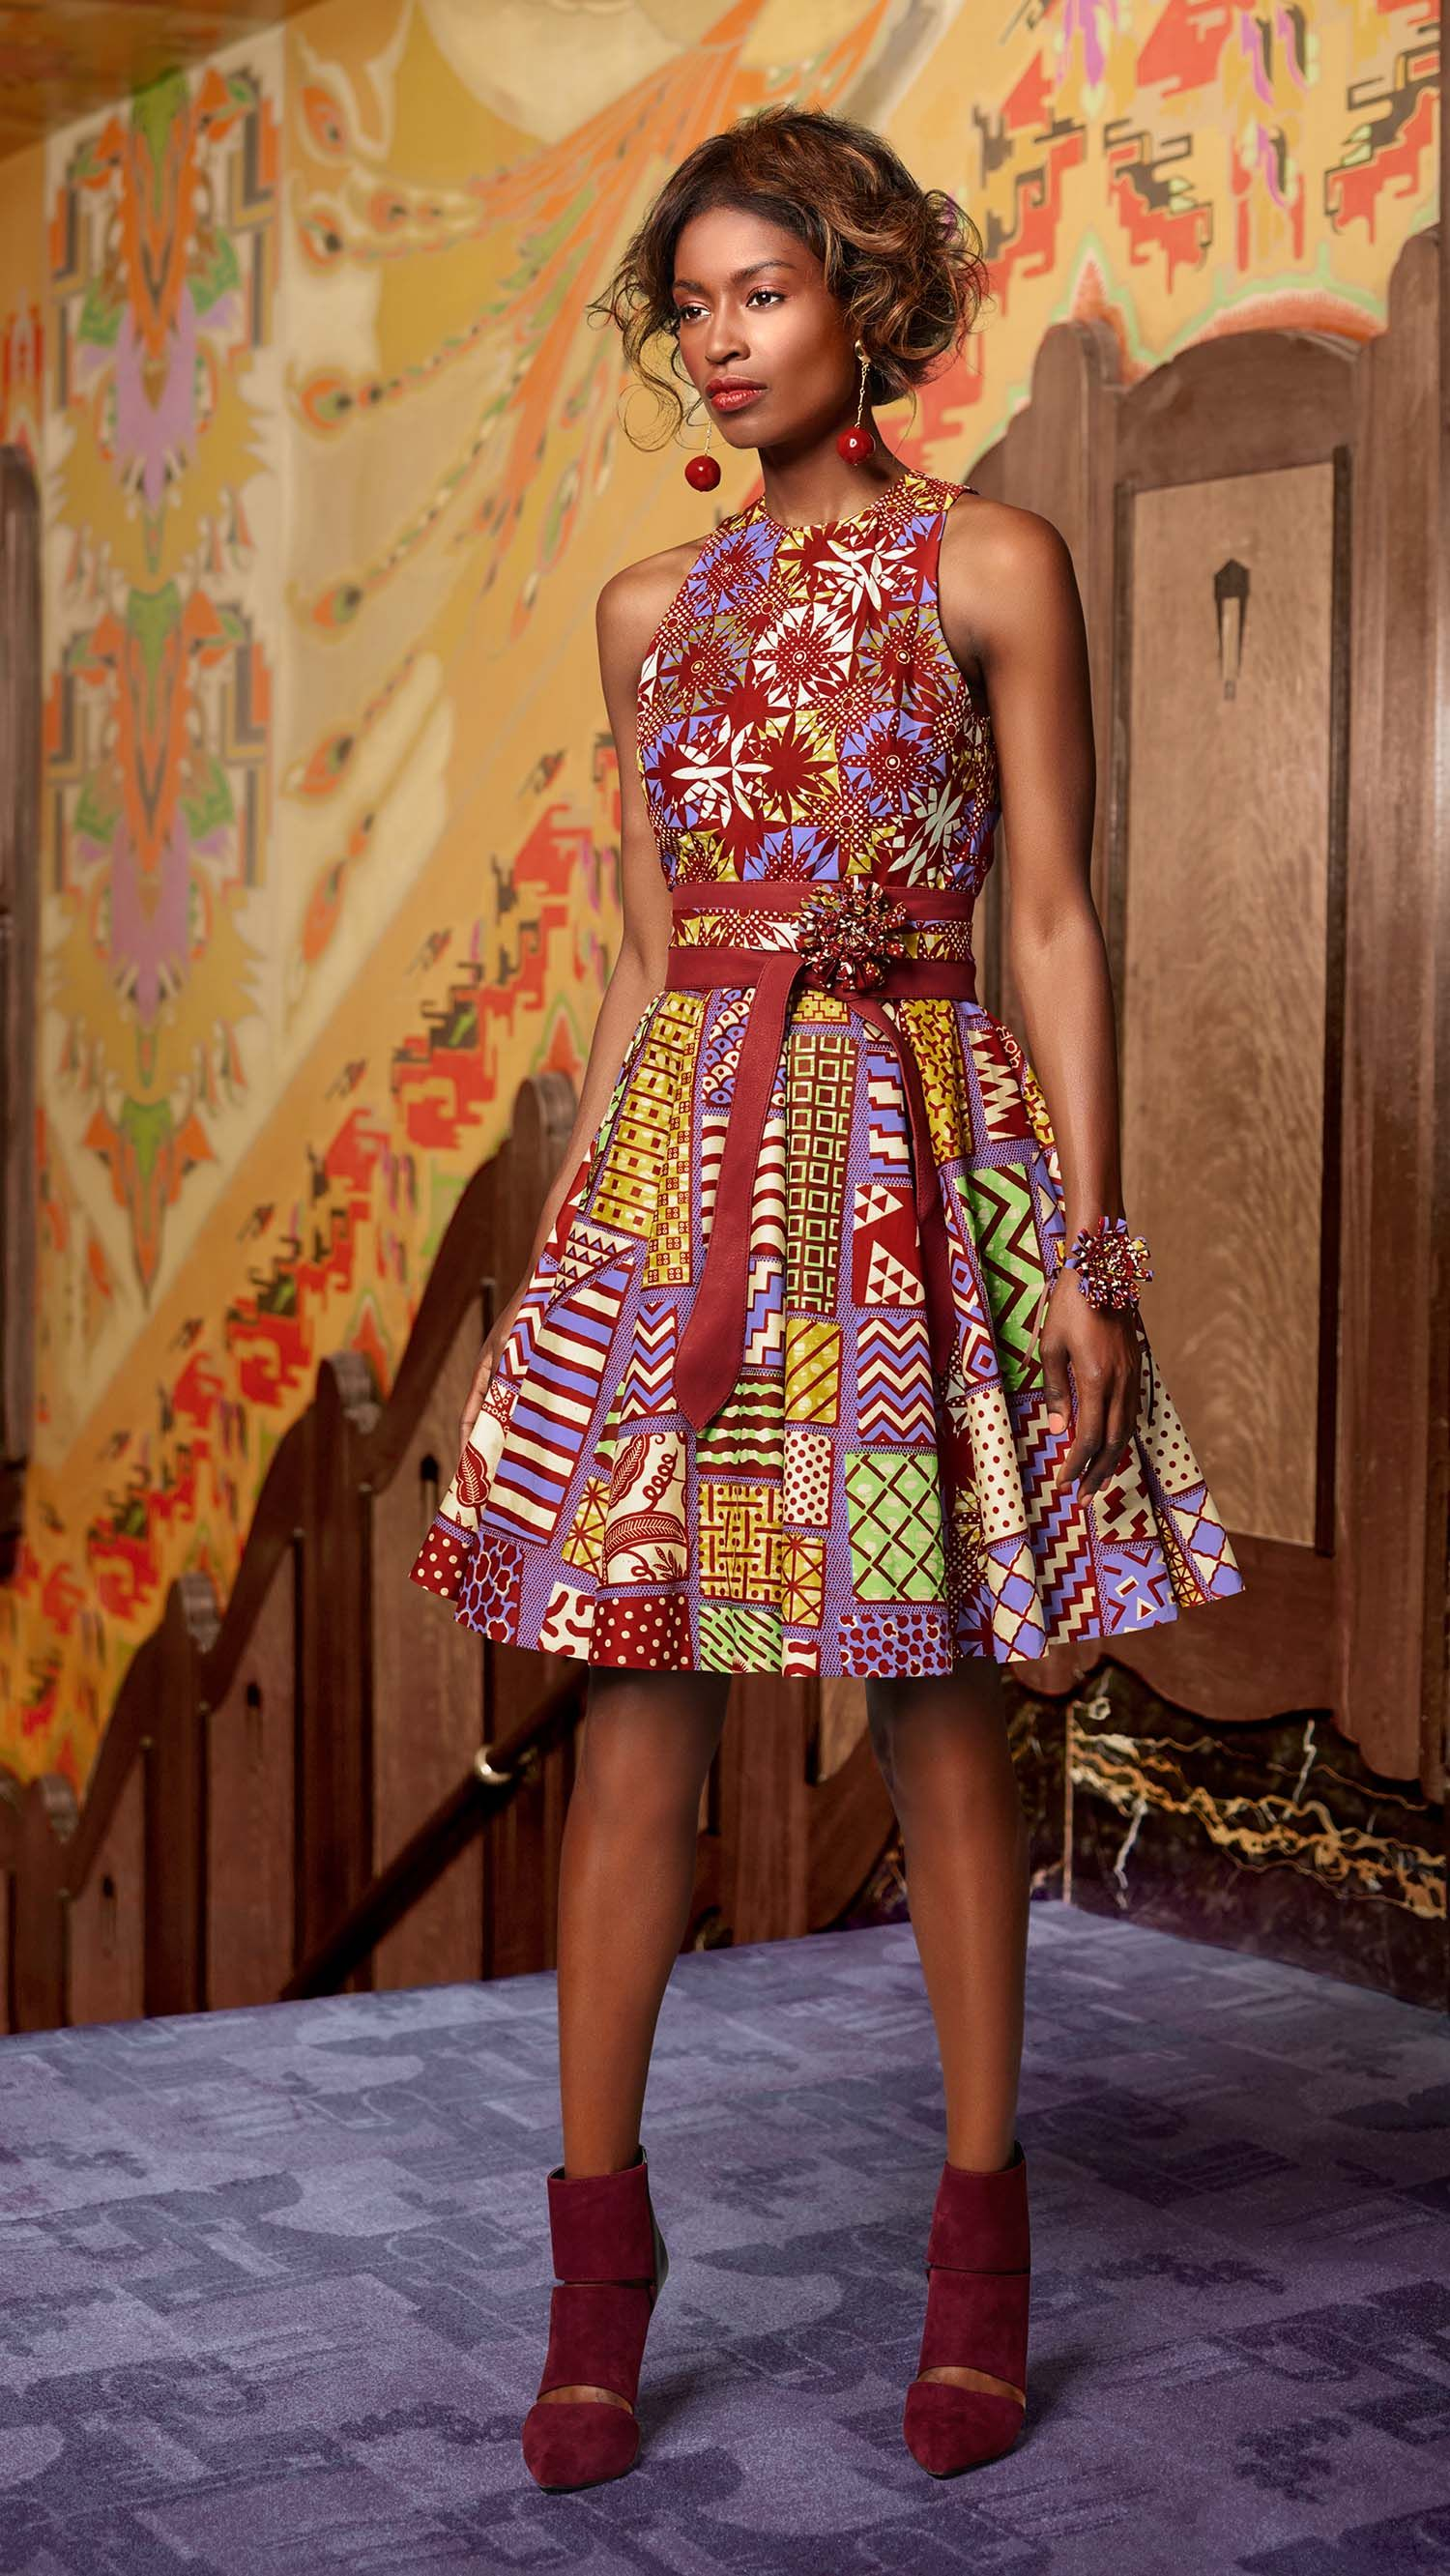 un esprit classique vlisco v inspired mode africaine pinterest mode africaine robe. Black Bedroom Furniture Sets. Home Design Ideas